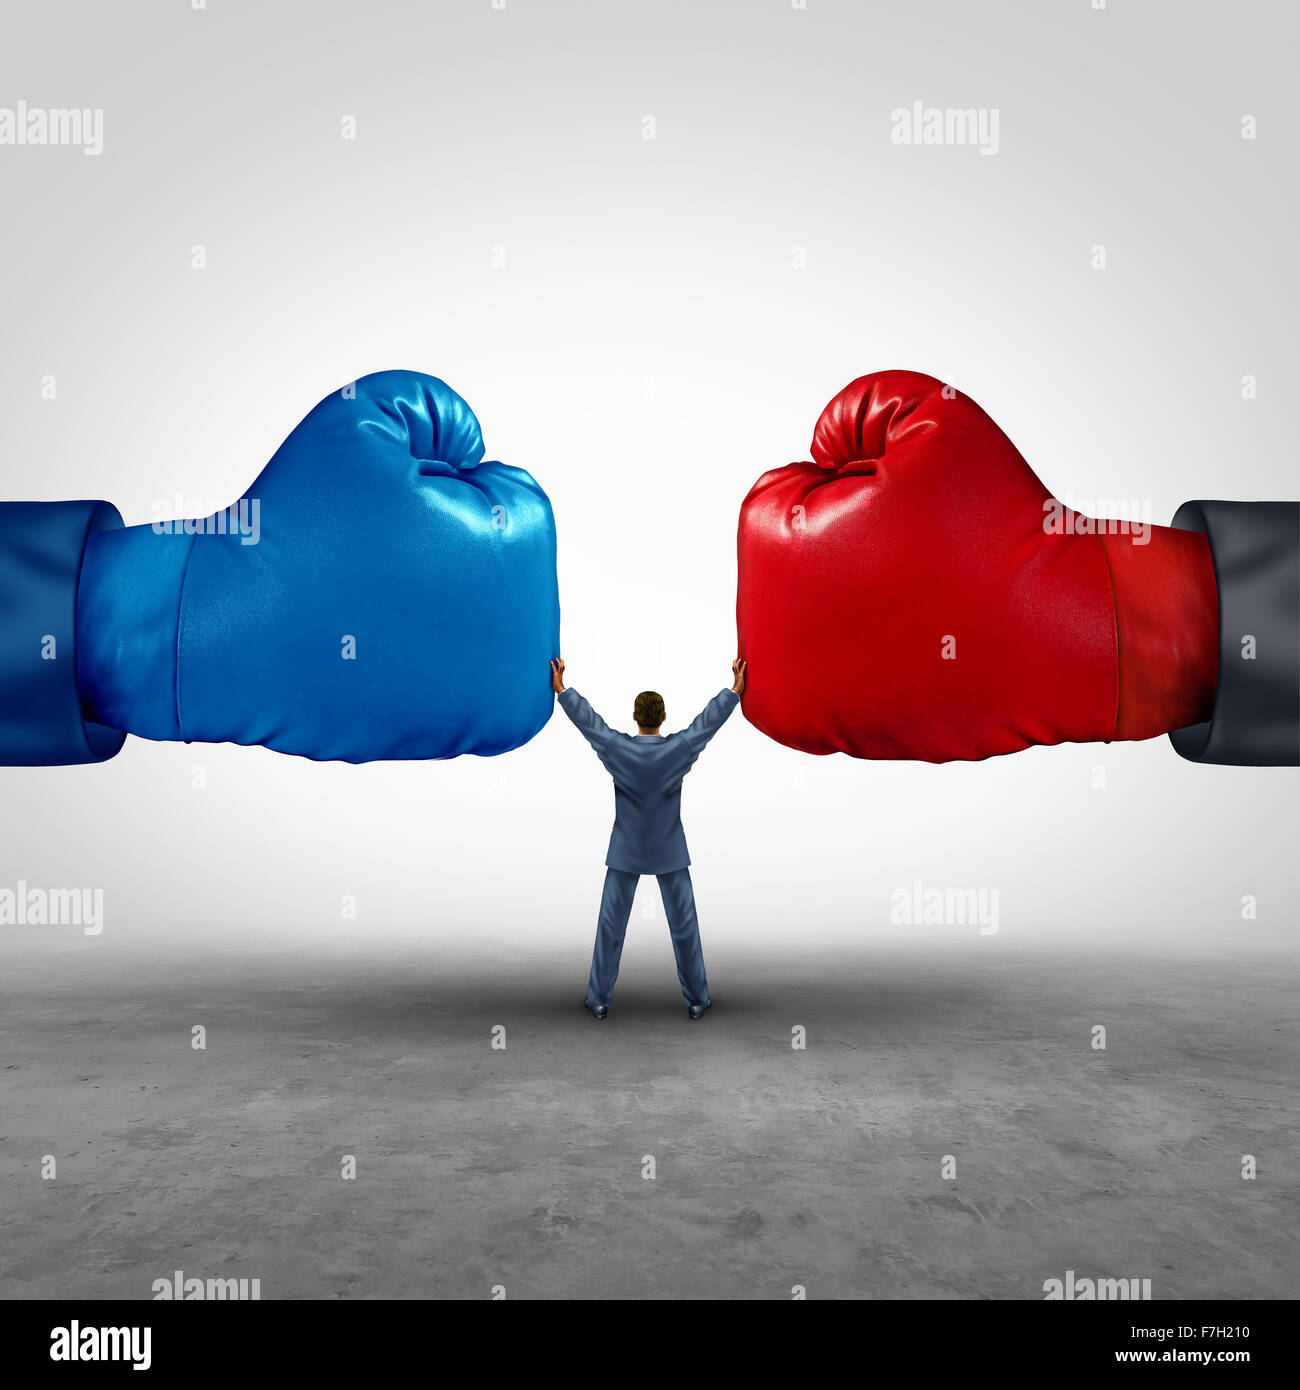 Mediate and legal mediation business concept as a businessman or person separating two boxing glove opposing competitors - Stock Image